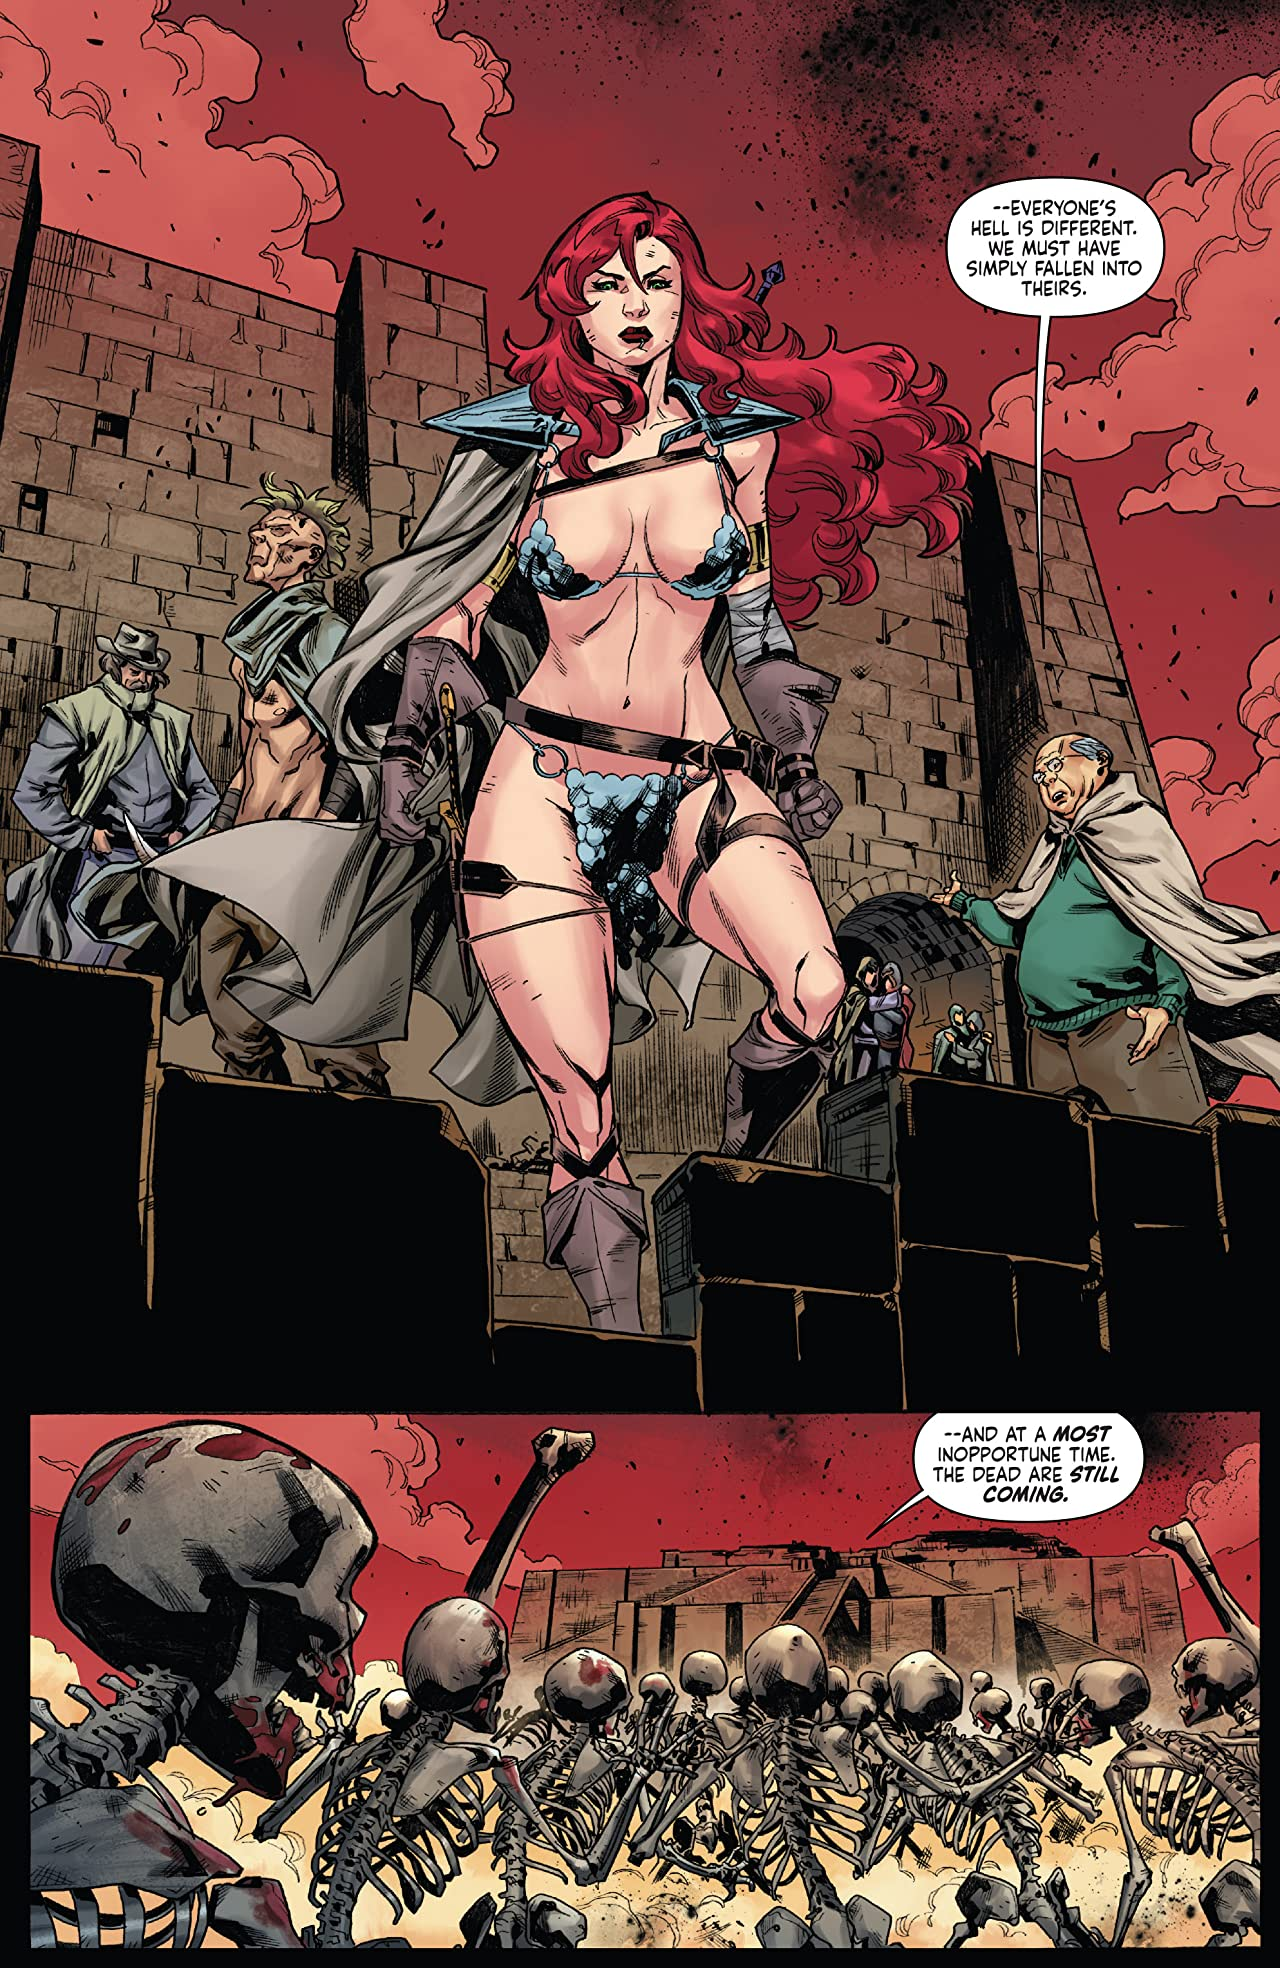 Red Sonja Vol. 4 #13